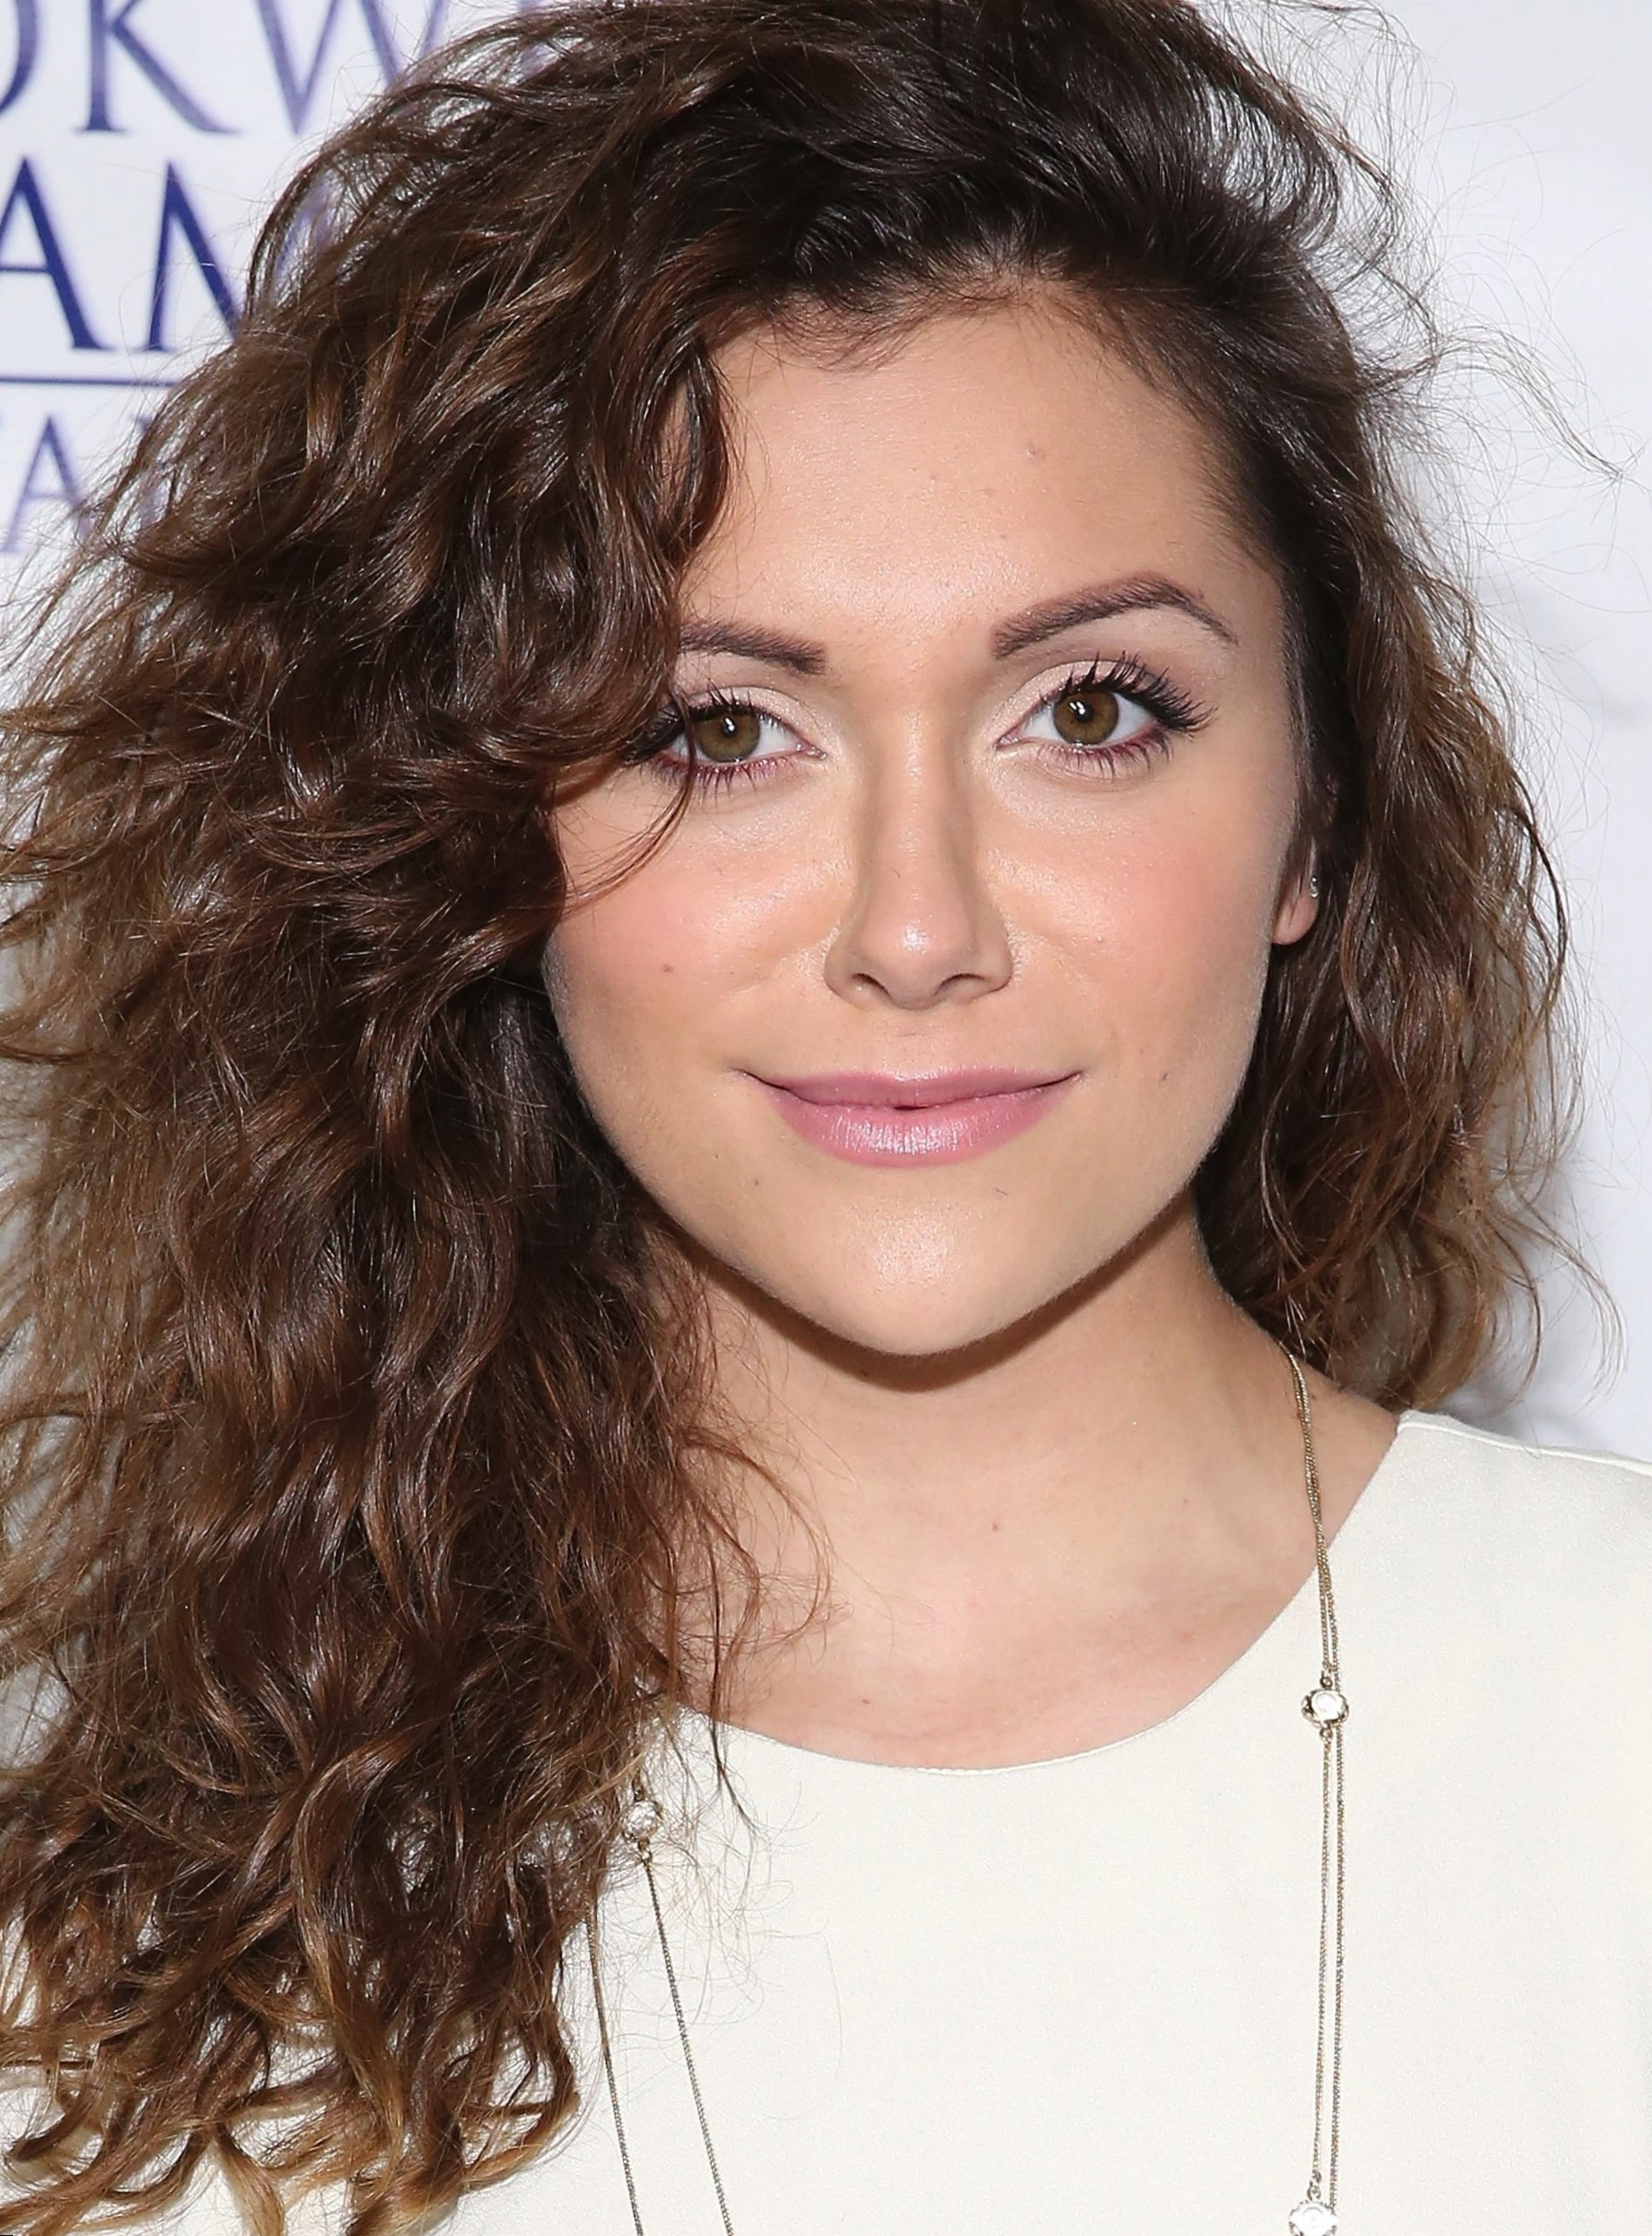 Alyson Stoner nudes (79 photo), pics Porno, Snapchat, cleavage 2020